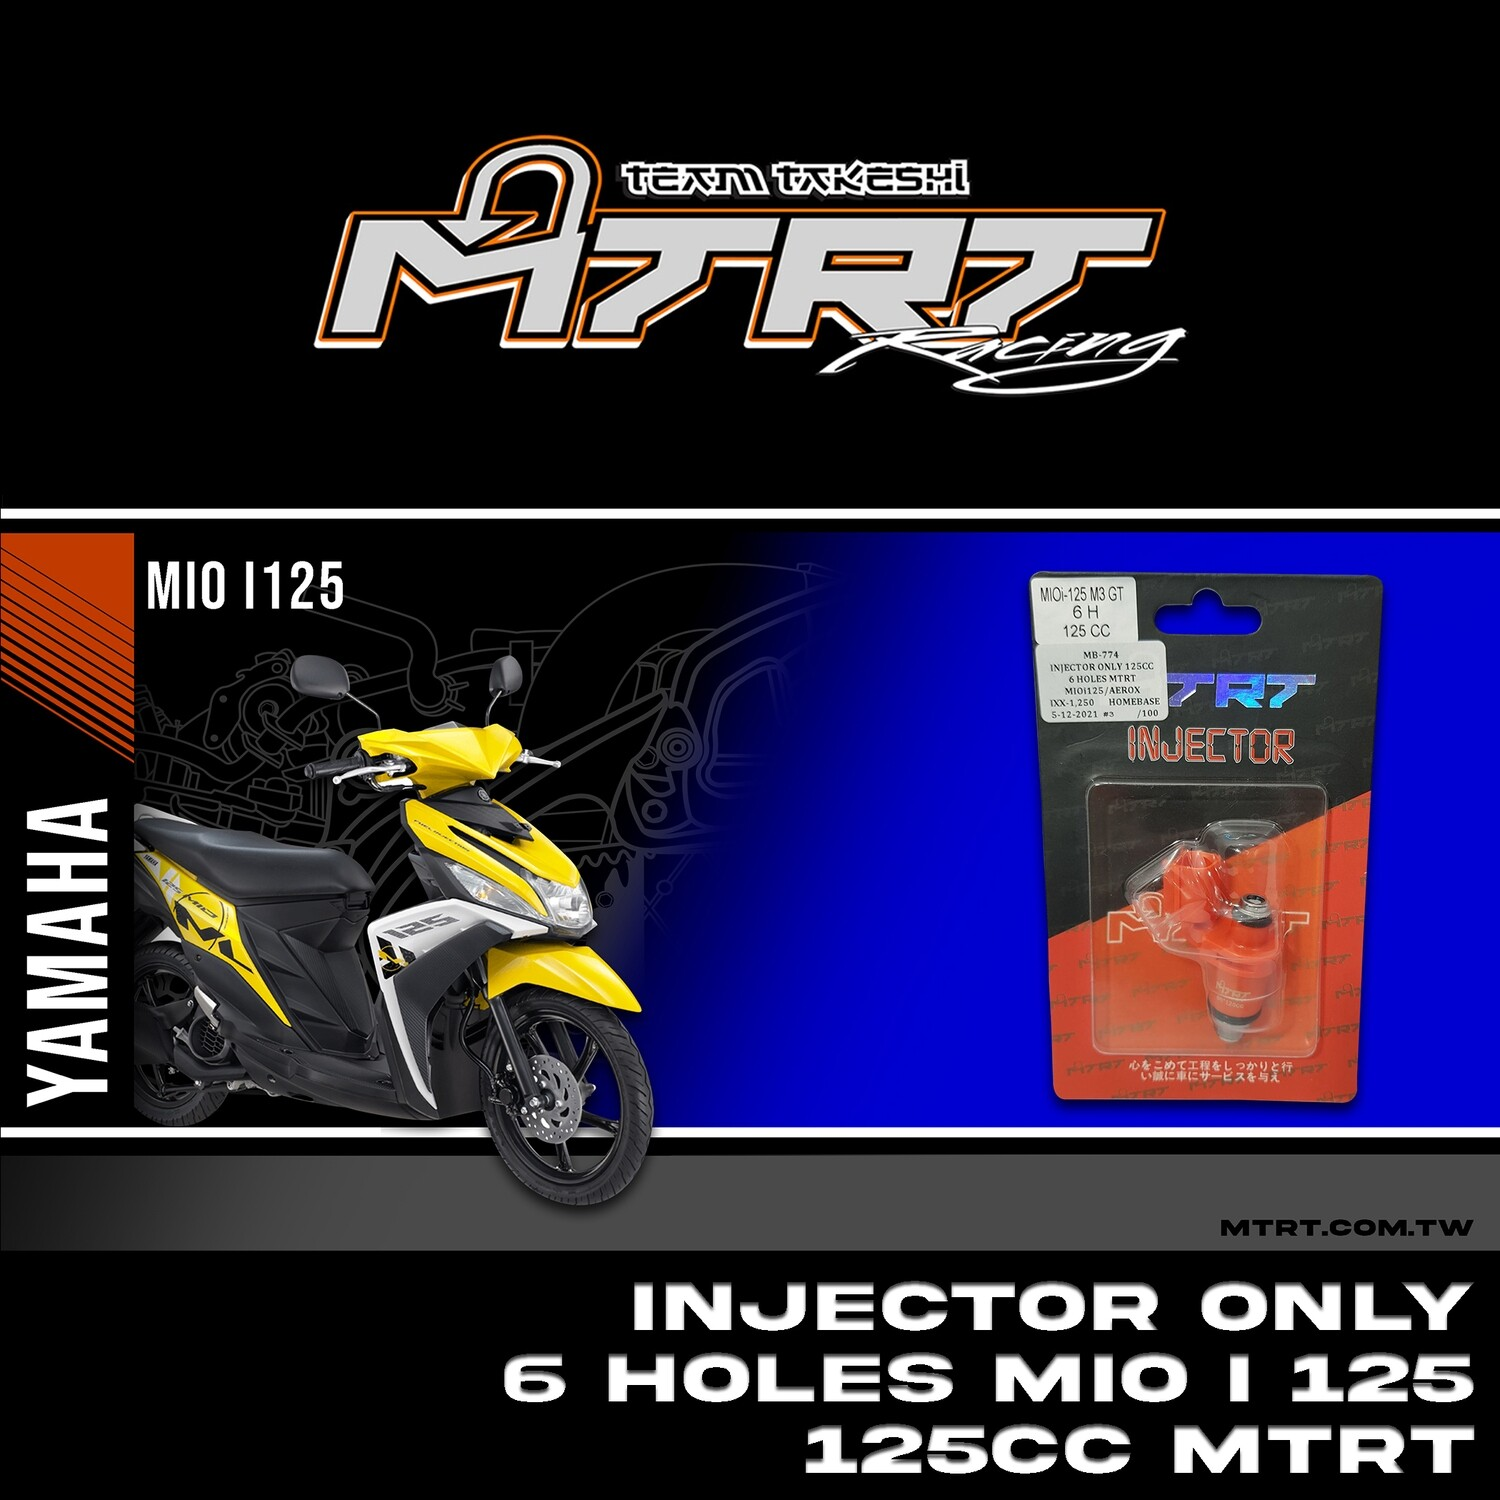 INJECTOR ONLY 6HOLES  MIOi125/Aerox155  125CC MTRT